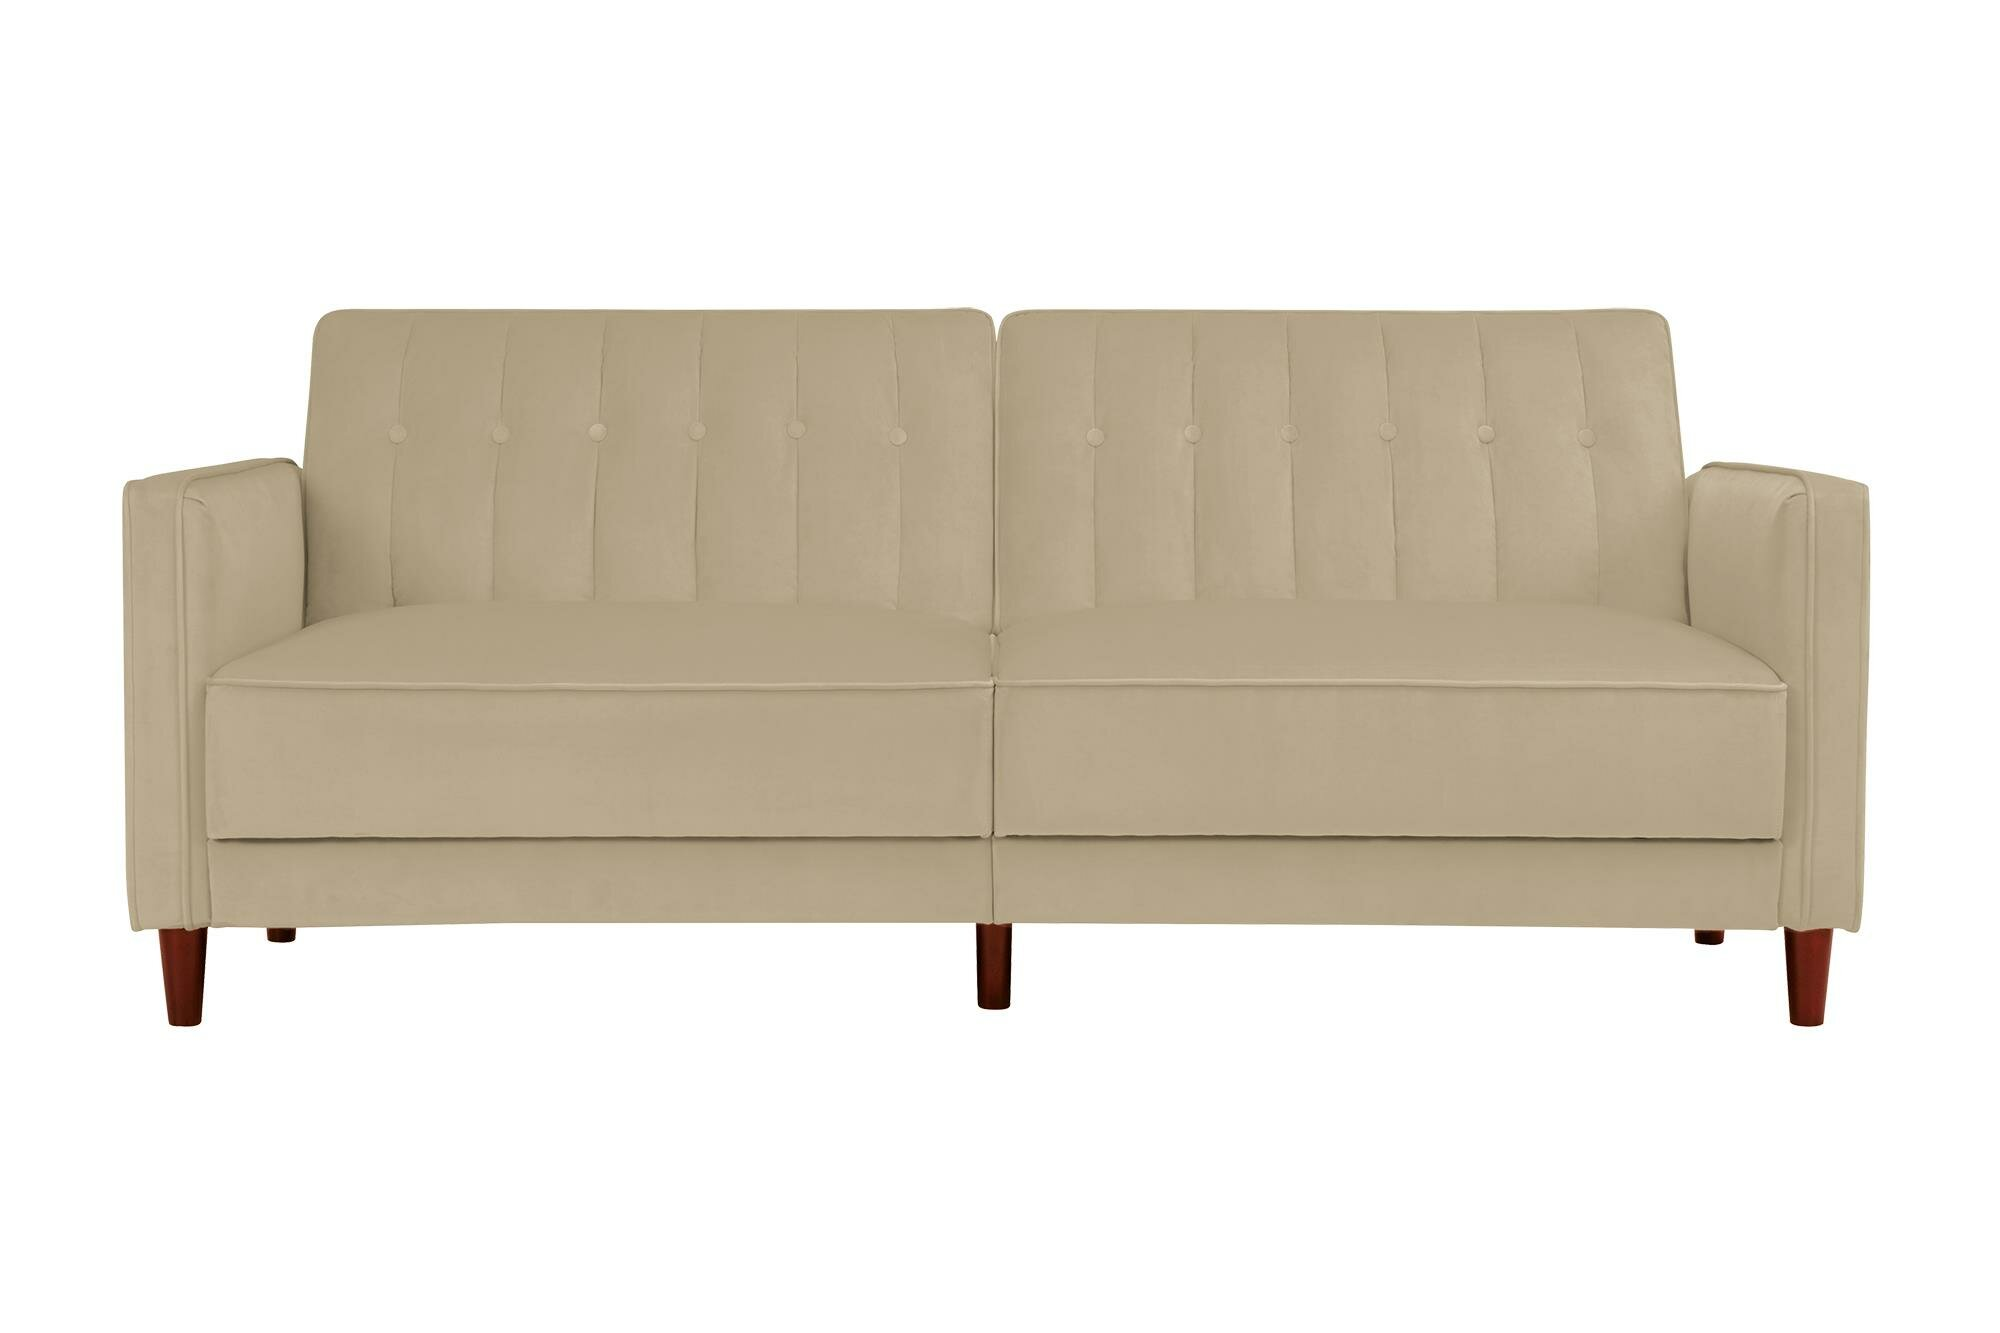 loveseat target for small spaces couch sleeper futon a bed hide sofa sectional